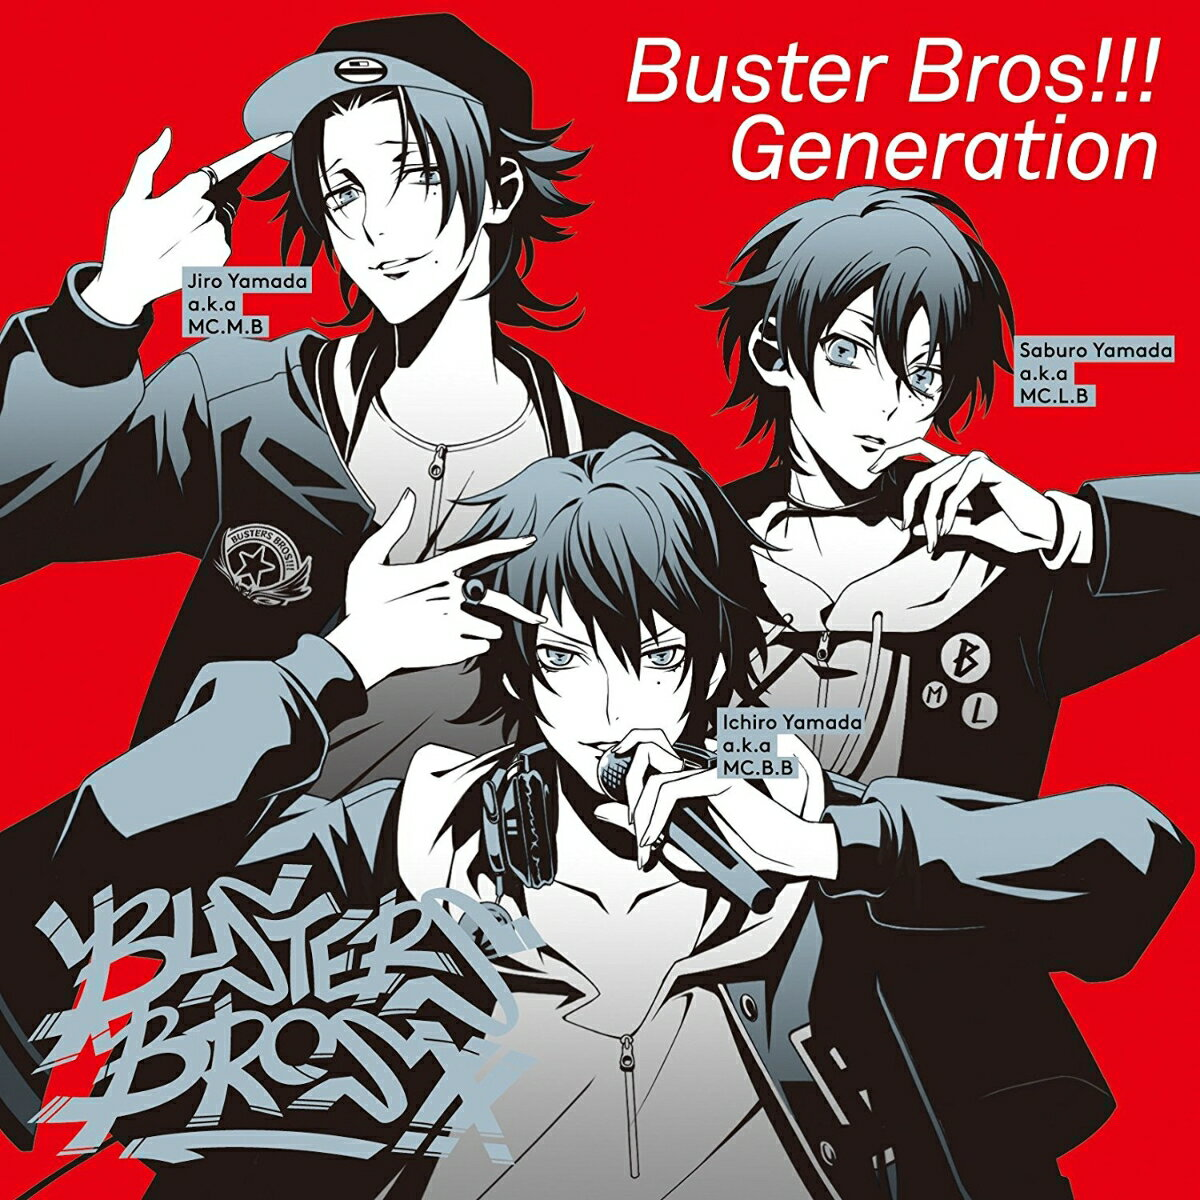 ロック・ポップス, その他  -Division Rap Battle-CD1Buster Bros!!! Generation Buster Bros!!!